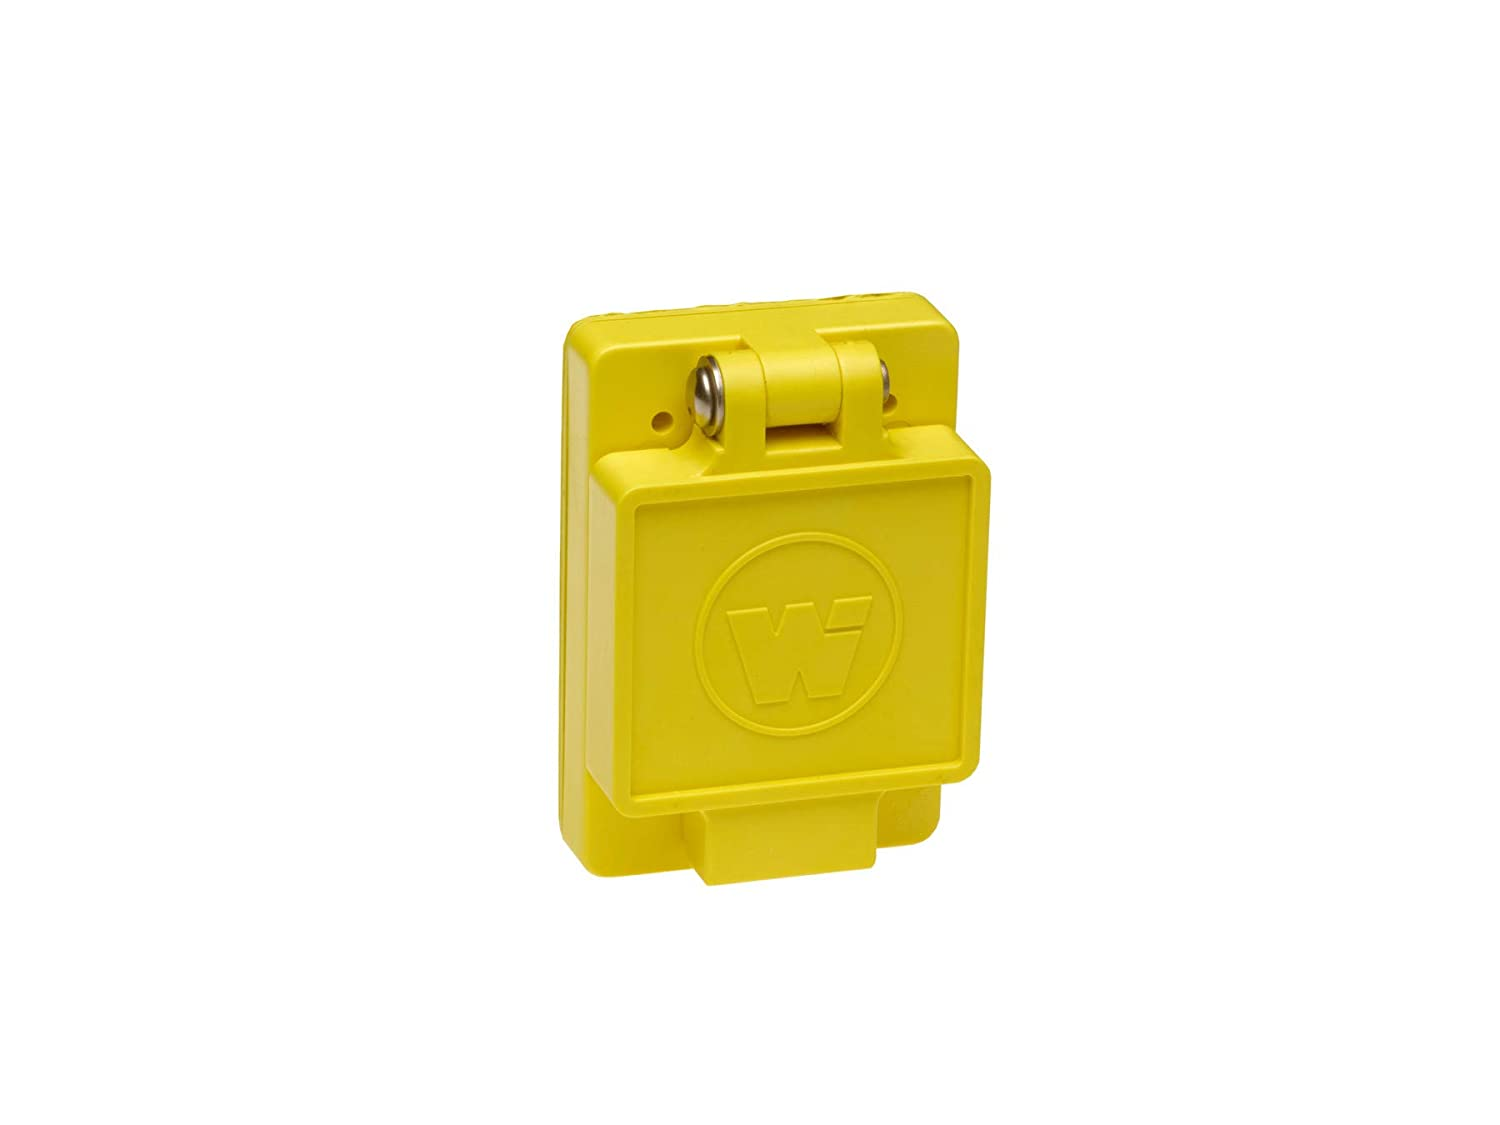 Woodhead 68W77 Watertite Wet Location Locking Blade Receptacle, 3-Phase, Single Flip Lid, Male, 4 Wires, 3 Poles, NEMA L17-30 Configuration, Yellow, 30A Current, 600V Voltage